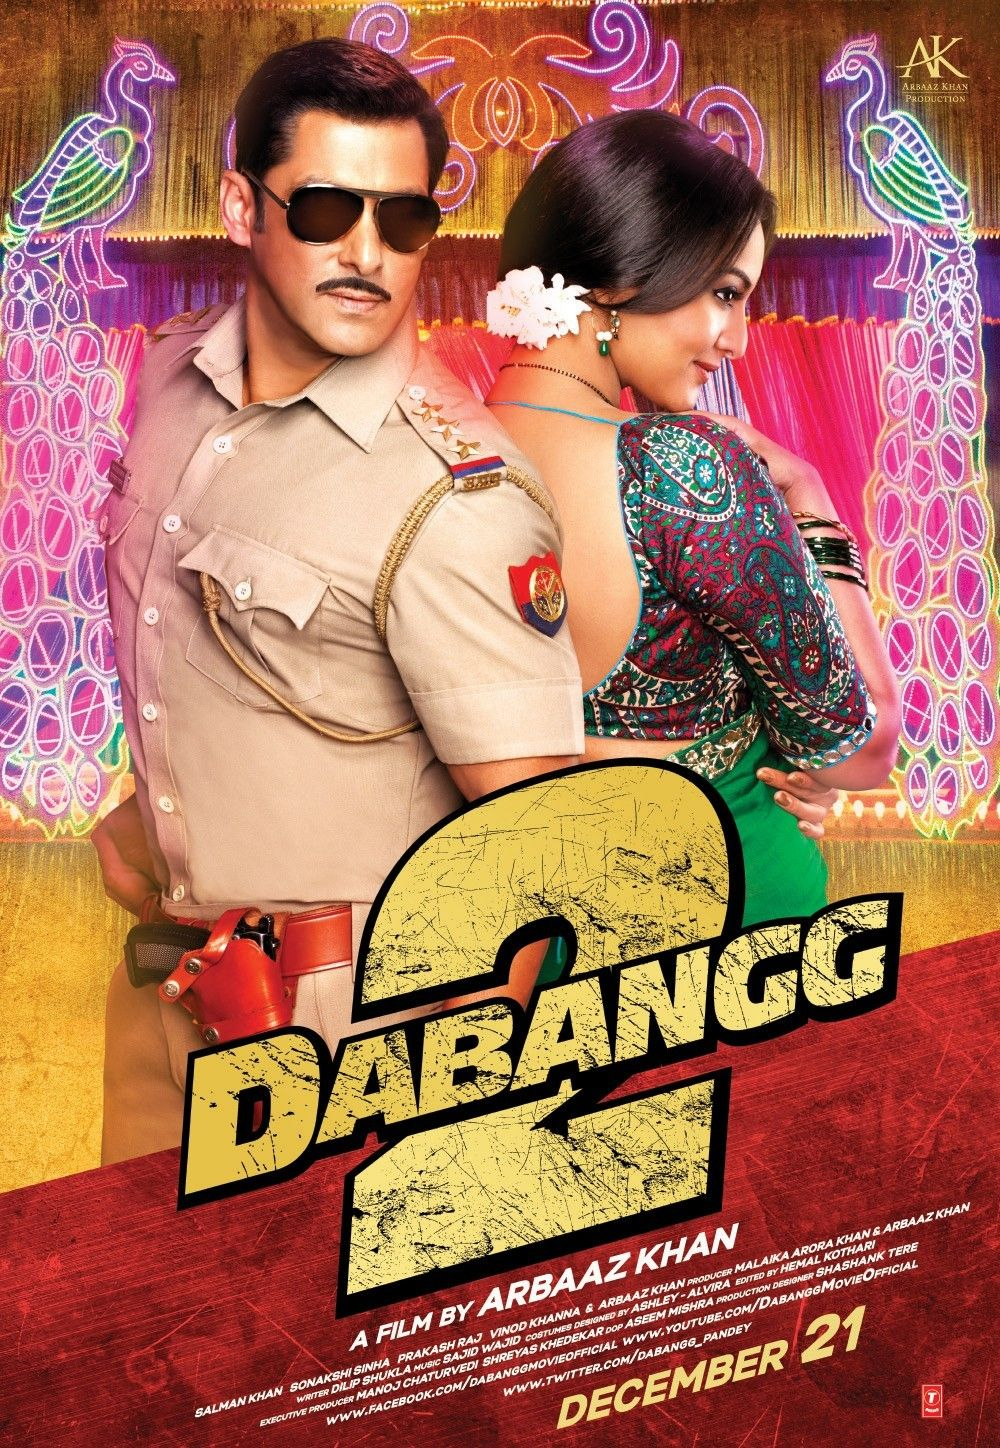 Dabangg 2 2012 BD50 1080p Untouched BluRay Eros DRs | 31 GB |